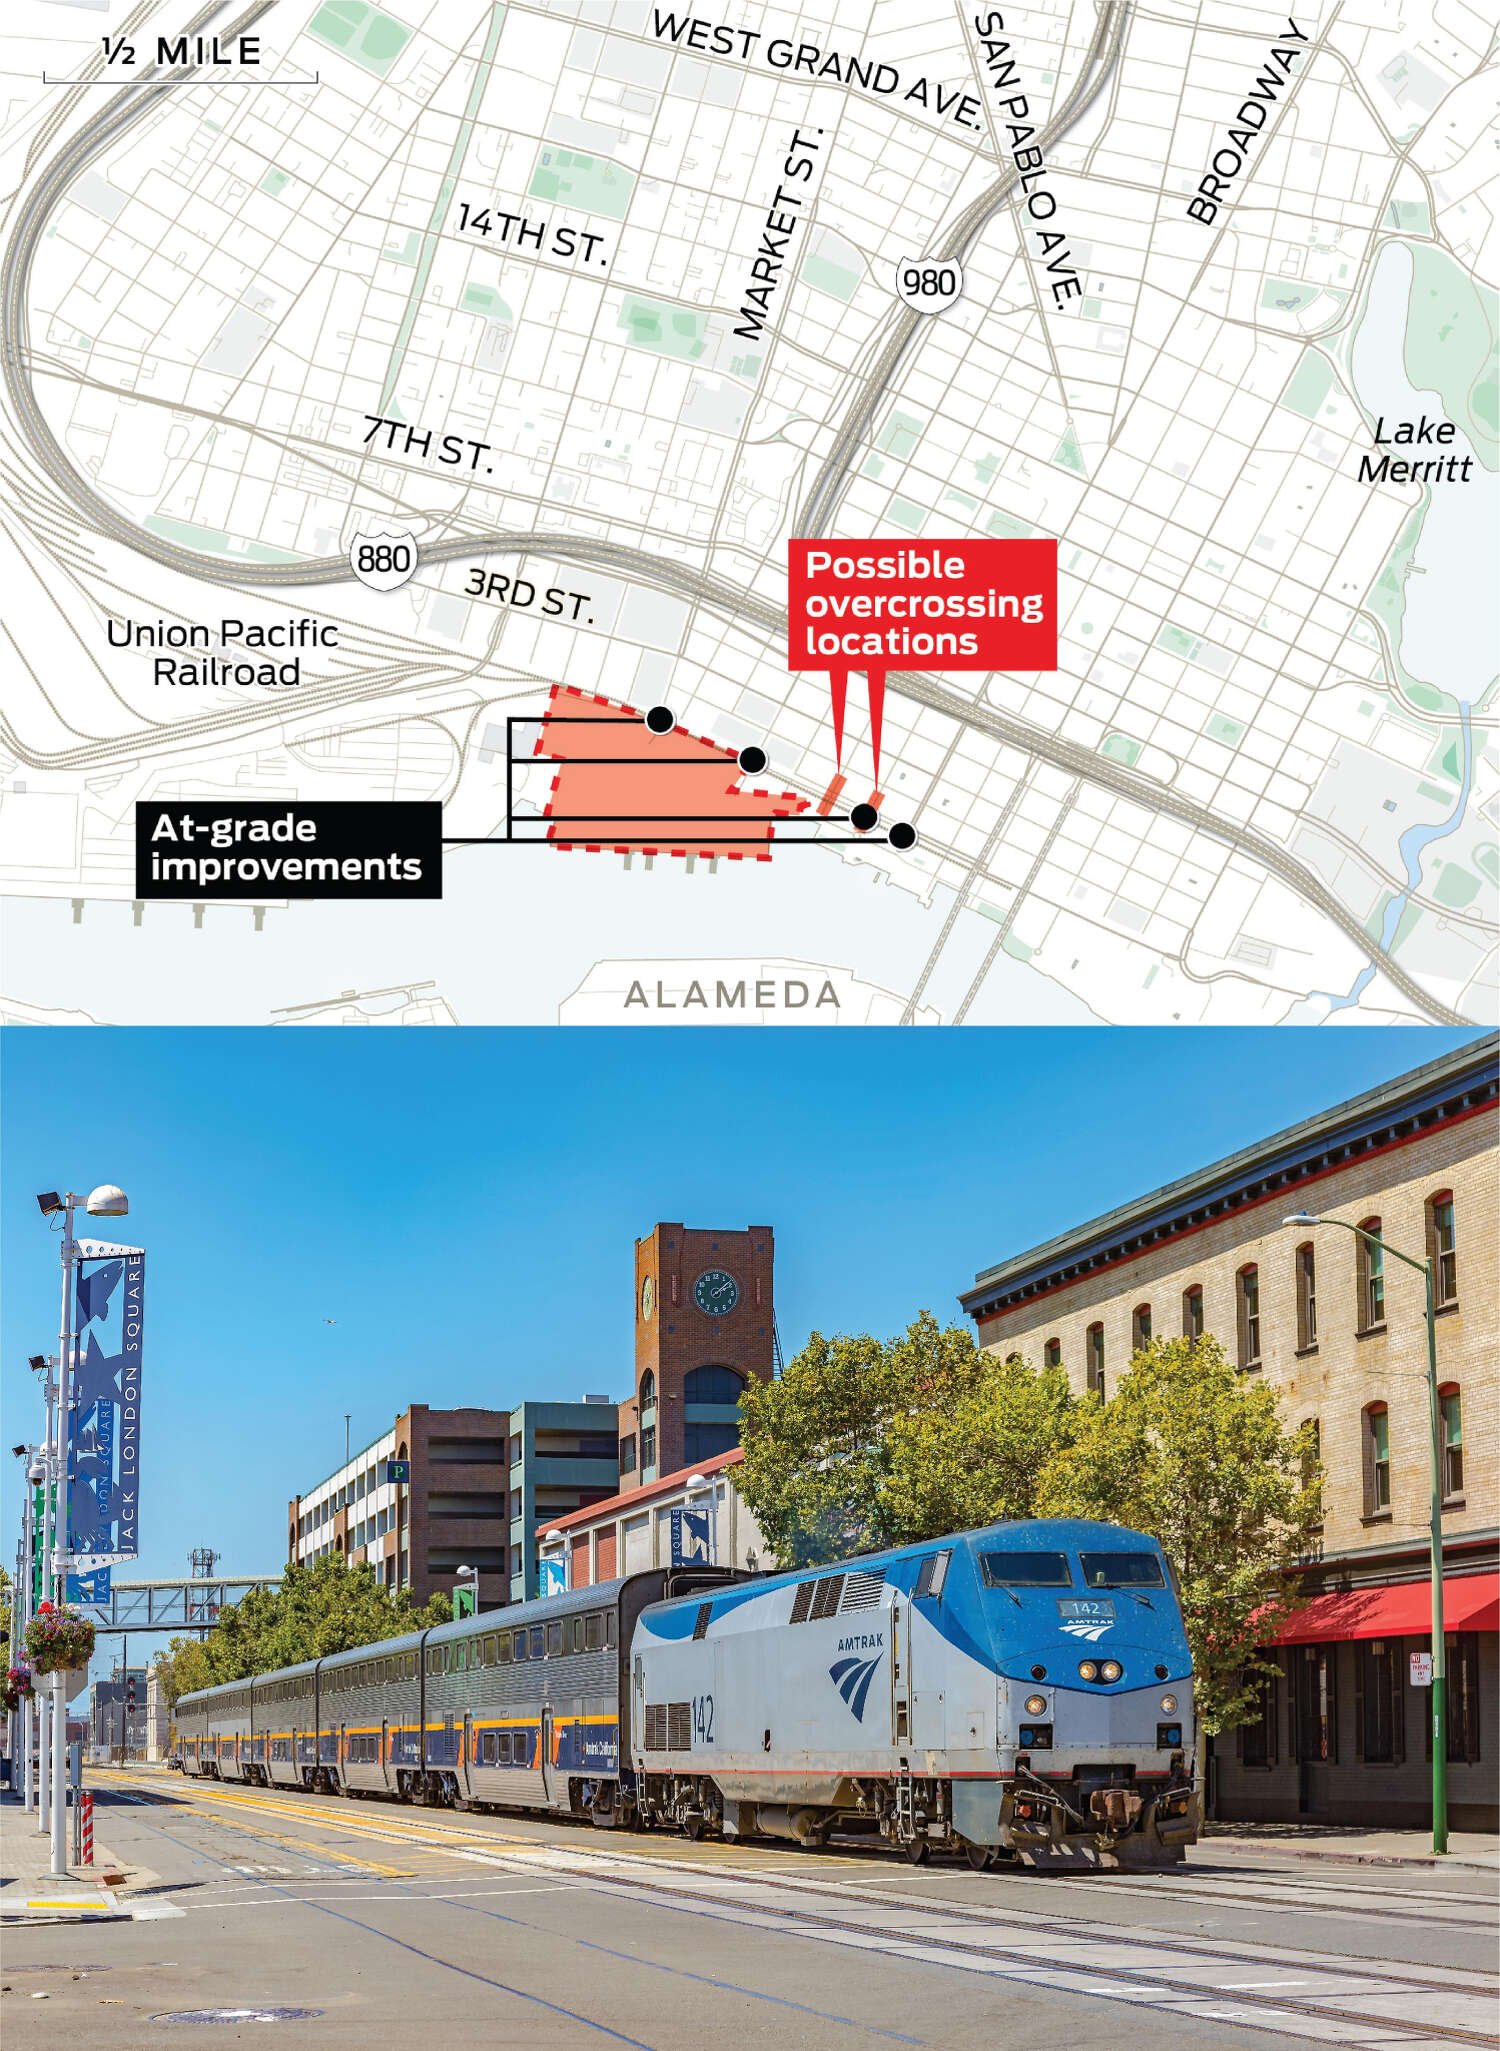 The crossing of Jefferson and Clay streets with the railroad tracks is highlighted as a potential pedestrian and bicycle overcrossing. Intersections between the railroad and Market Street, Martin Luther King Jr Way, Clay Street, Washington Street and Broadway are plotted. A photo of an Amtrak train near Jack London Square is shown.